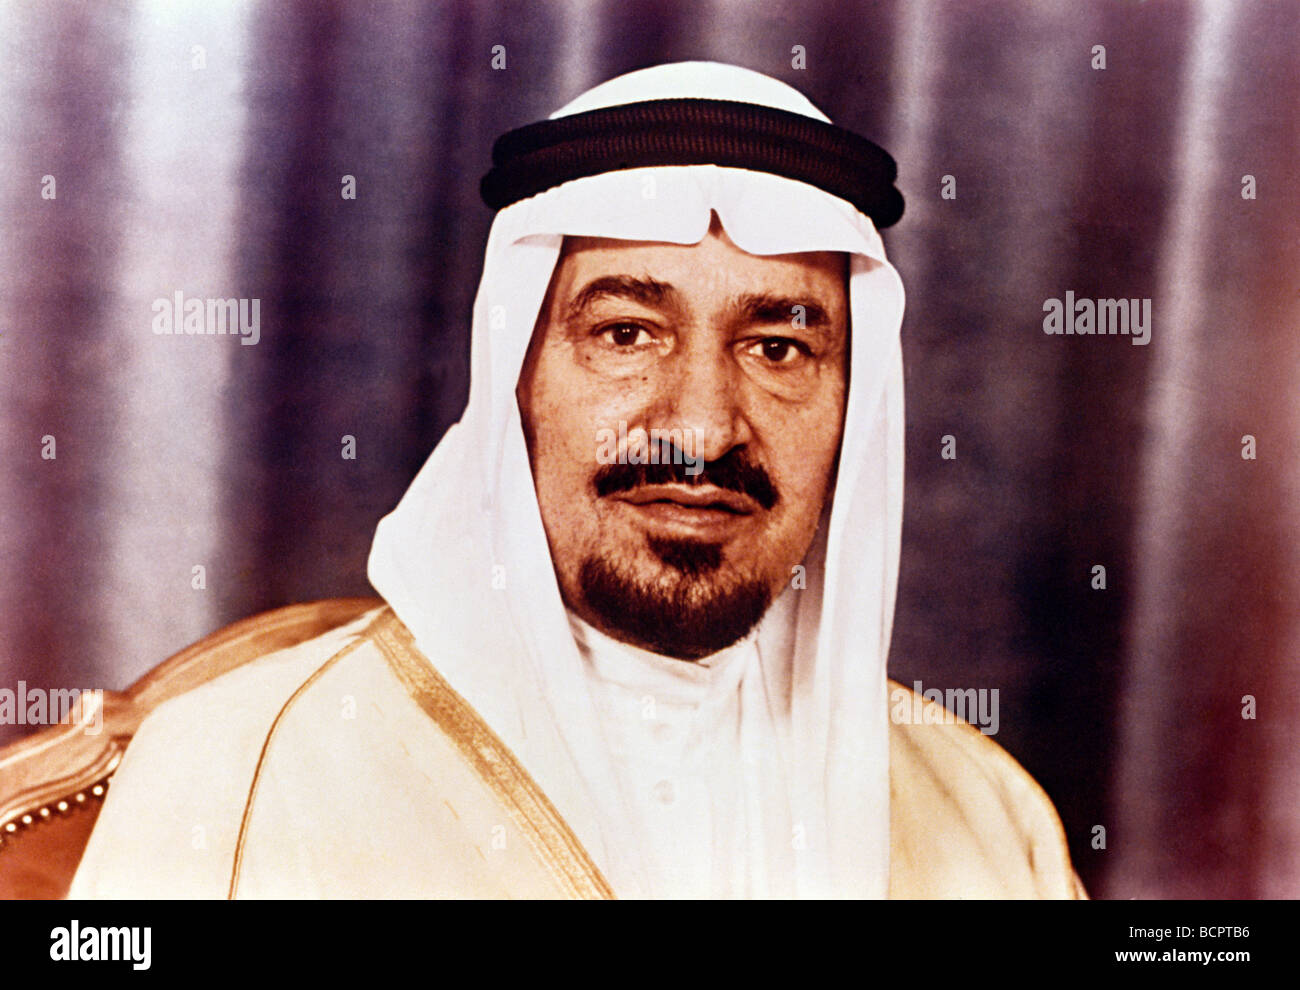 khaled stock photos khaled stock images  saudi arabia hm king khaled bin abdul aziz stock image